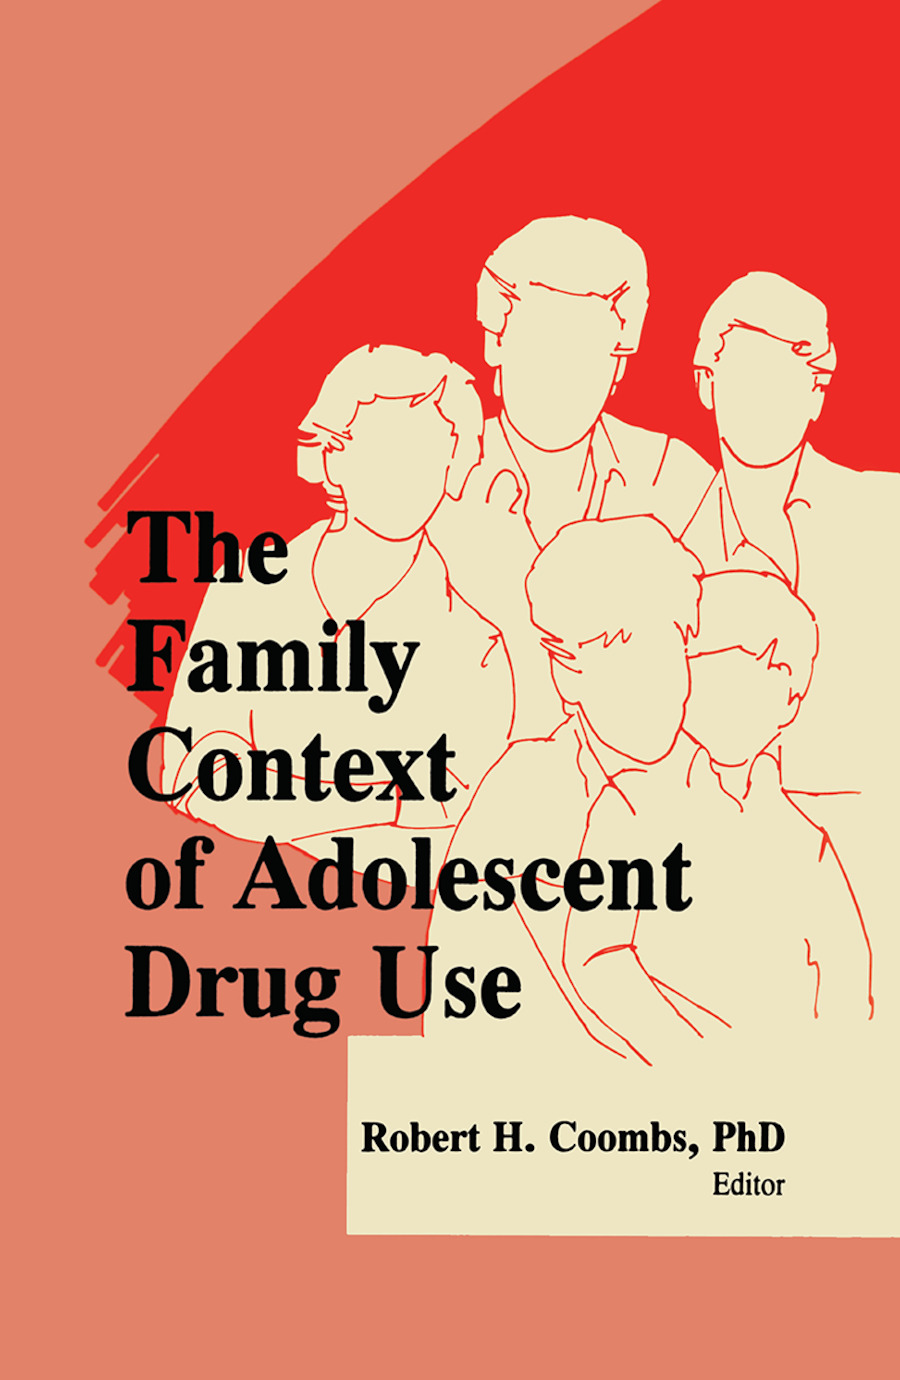 The Family Context of Adolescent Drug Use